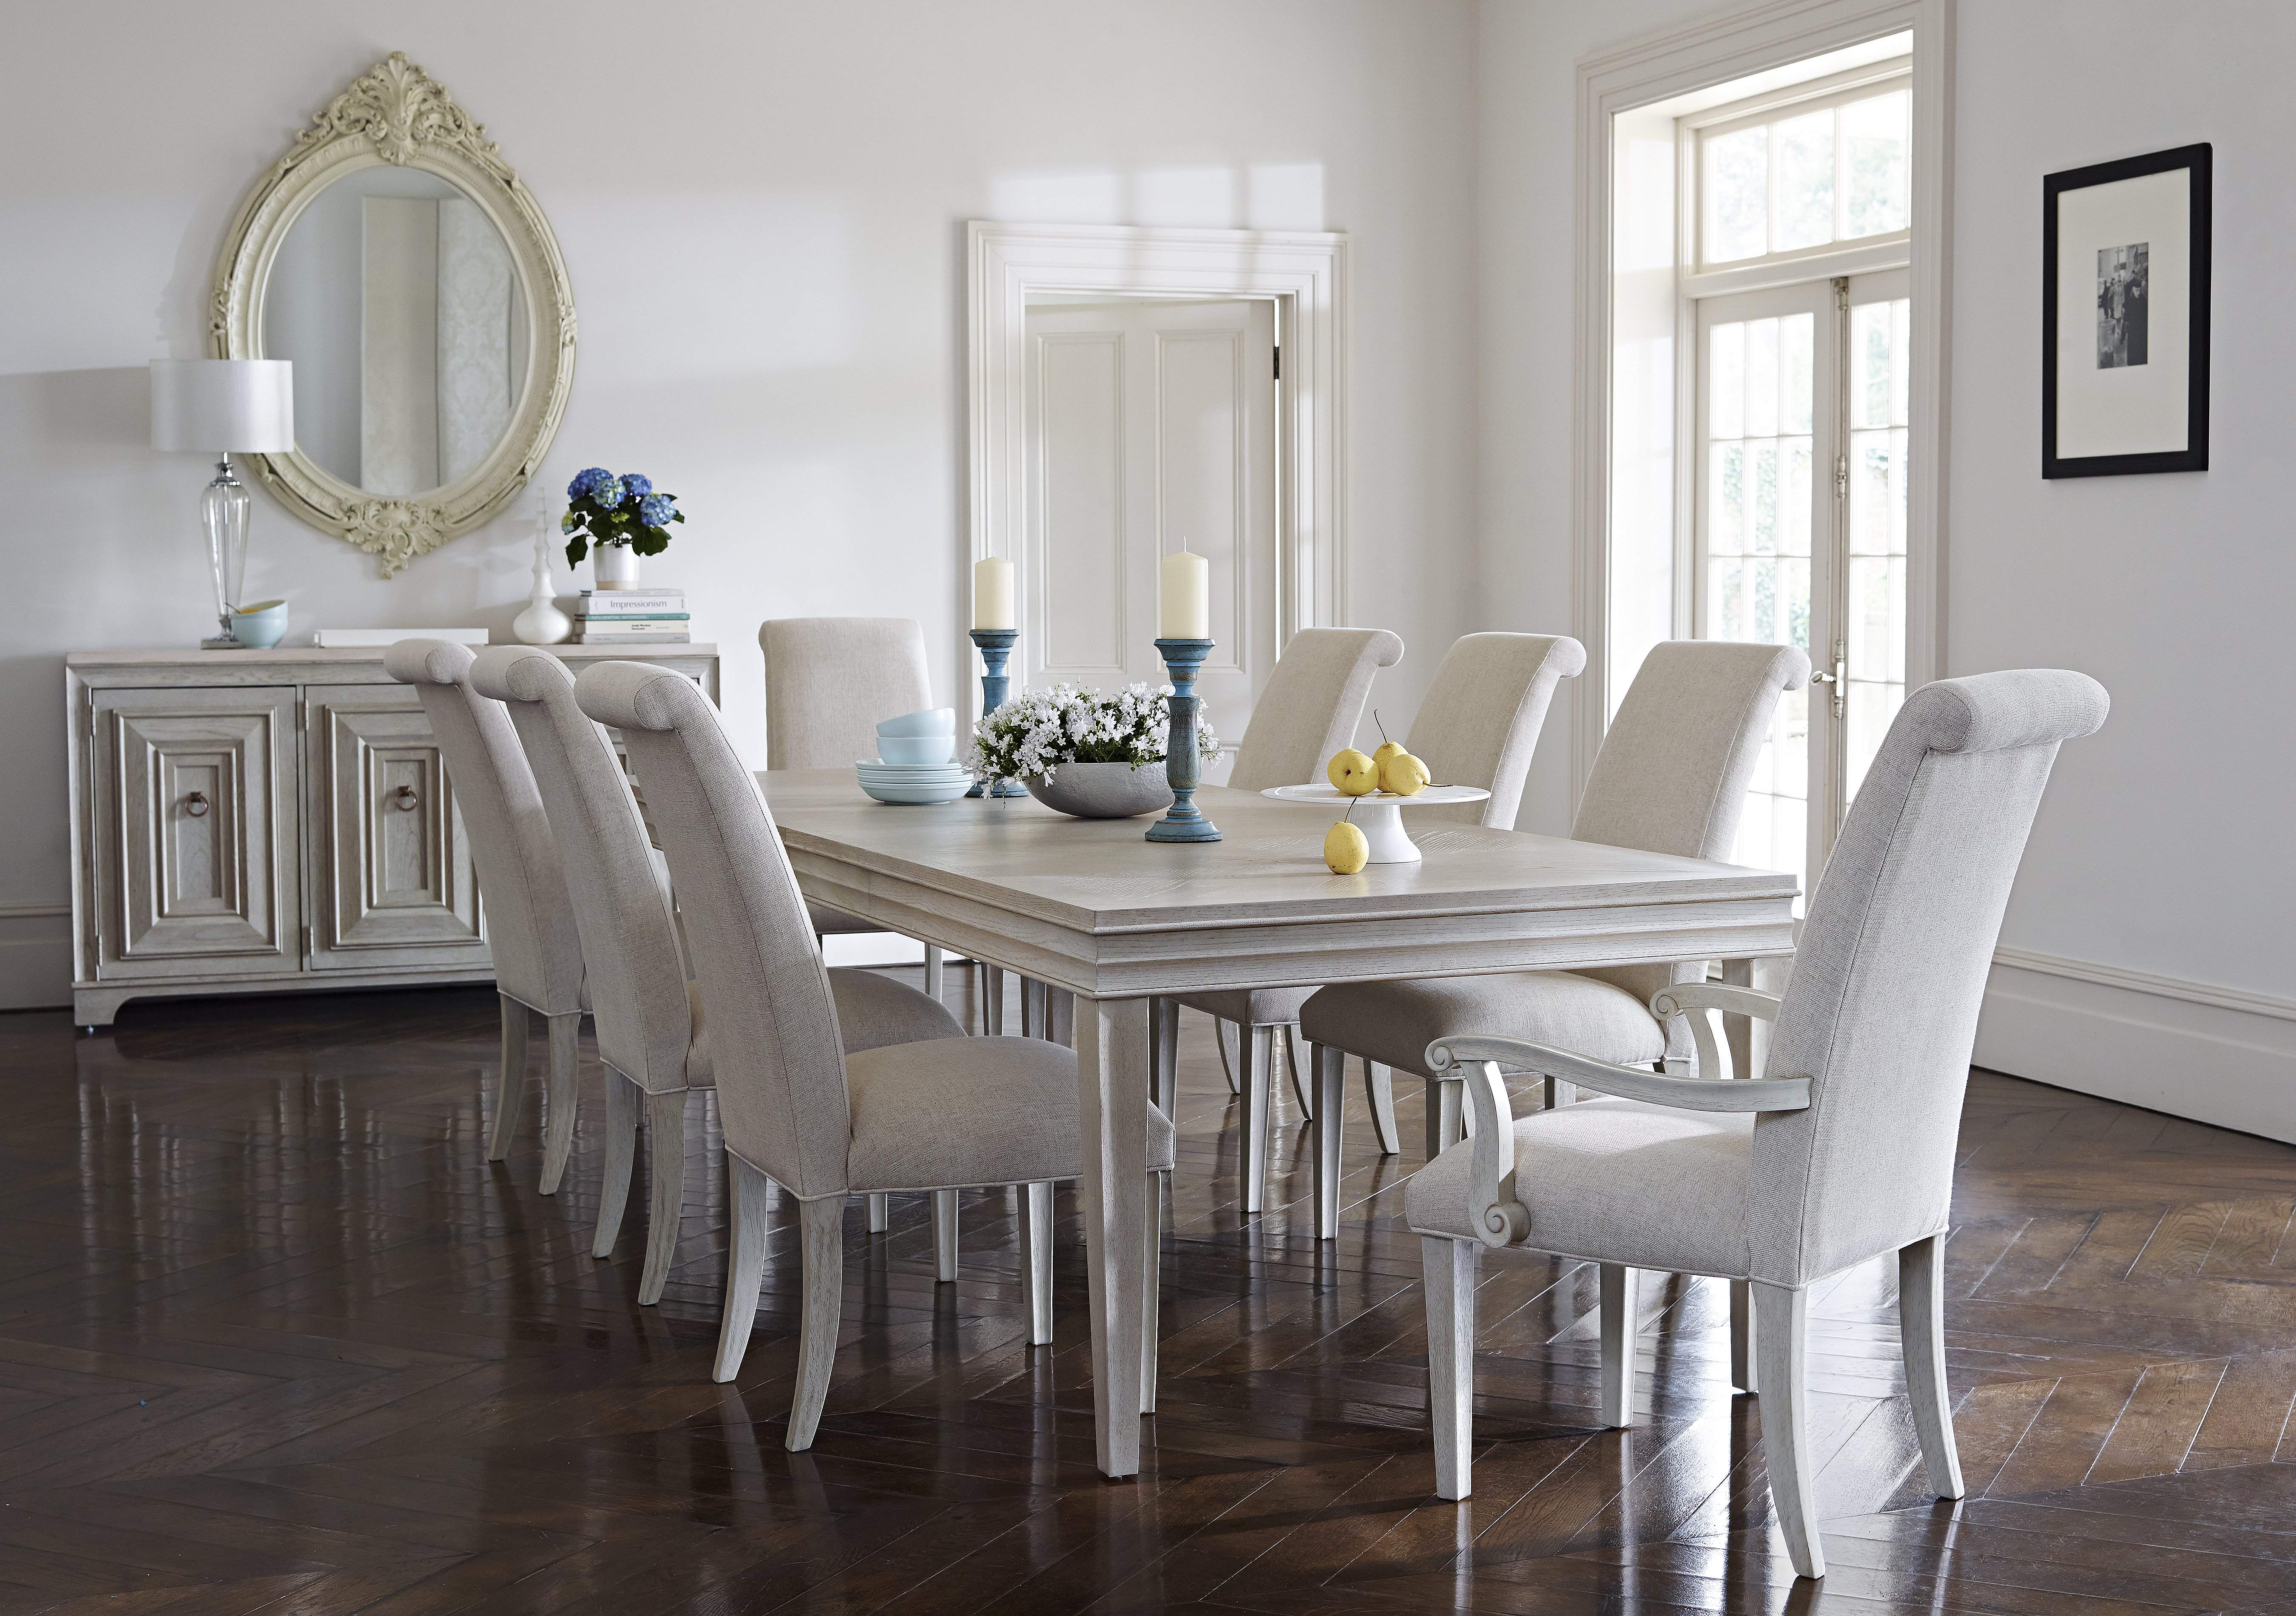 Furniture Village Dining Tables vermont extending dining table - willis and gambier - furniture